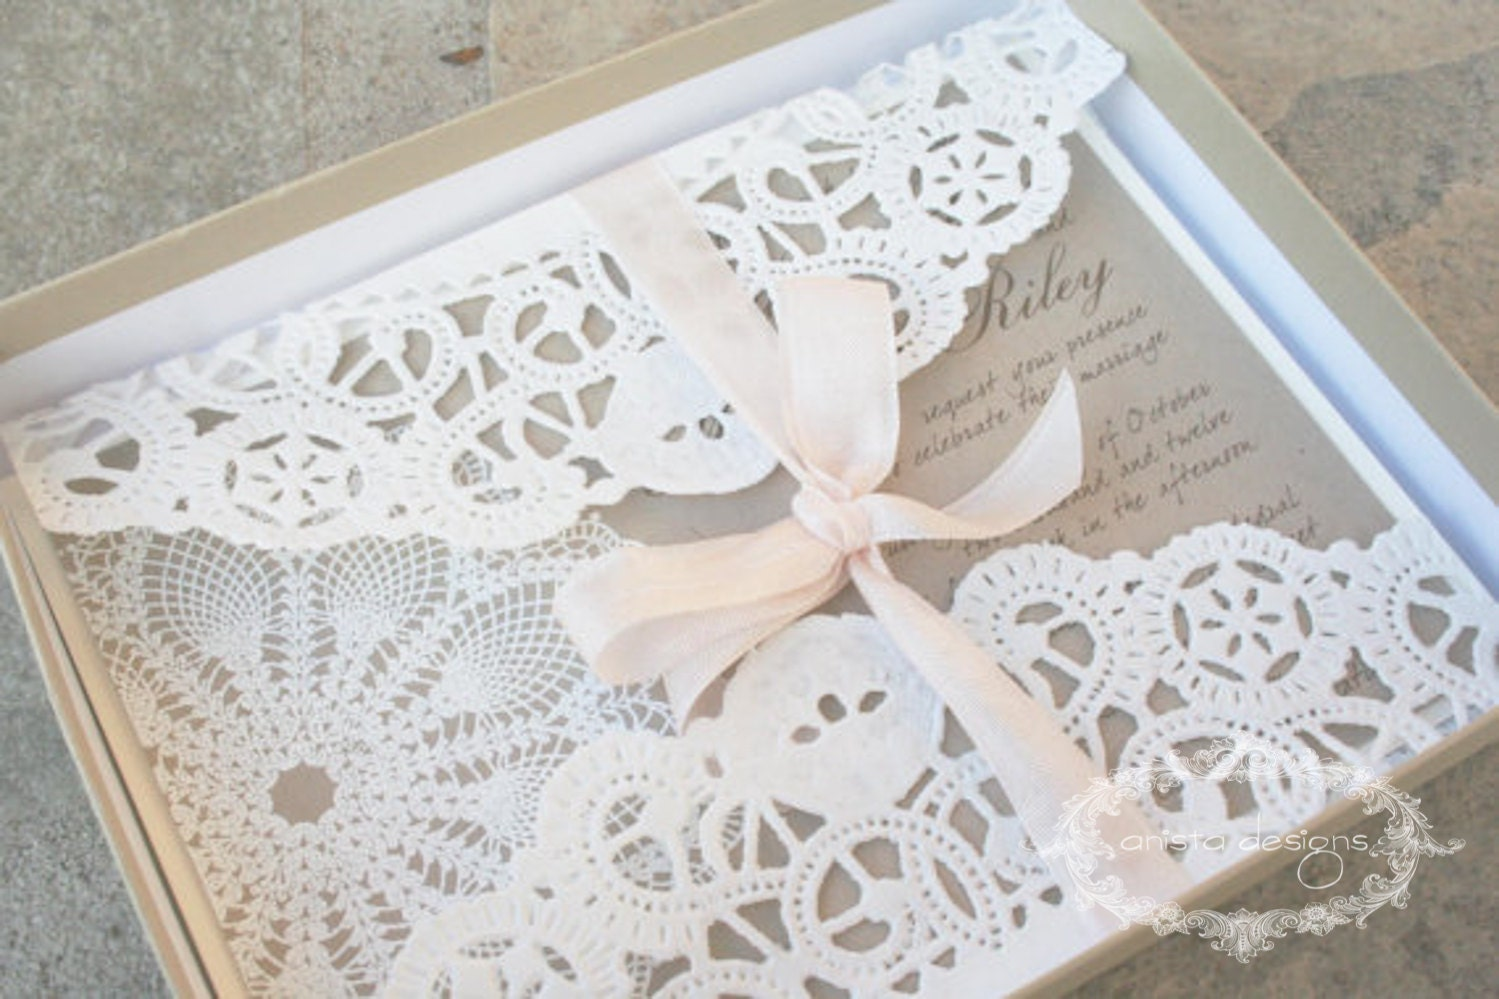 Wedding Invitation Lace: SALE: Vintage Lace Wedding Invitation Lace Doily Featured